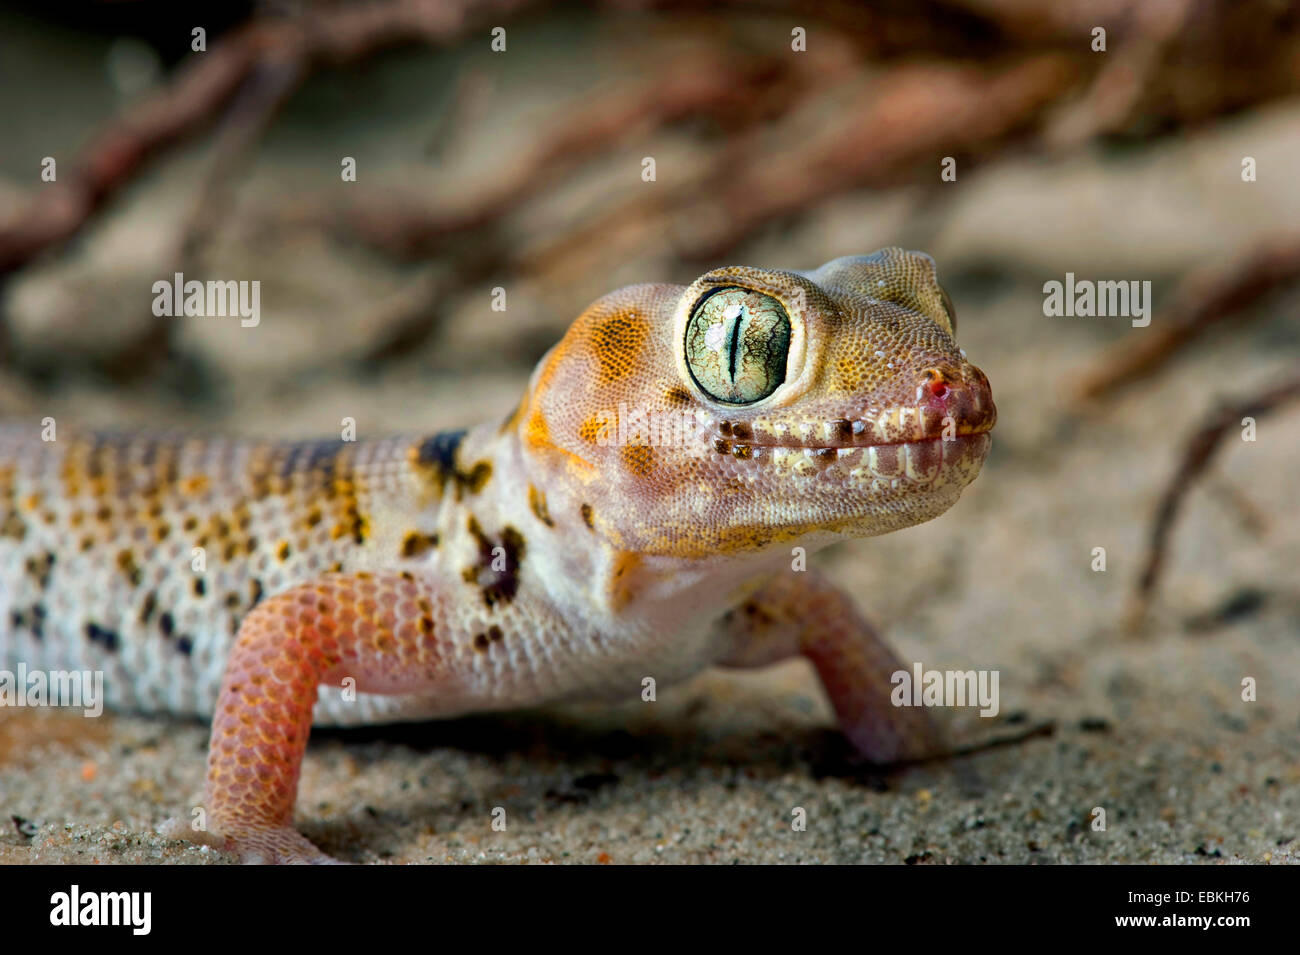 Web Footed Gecko (Teratoscincus microlepis), on sand Stock Photo